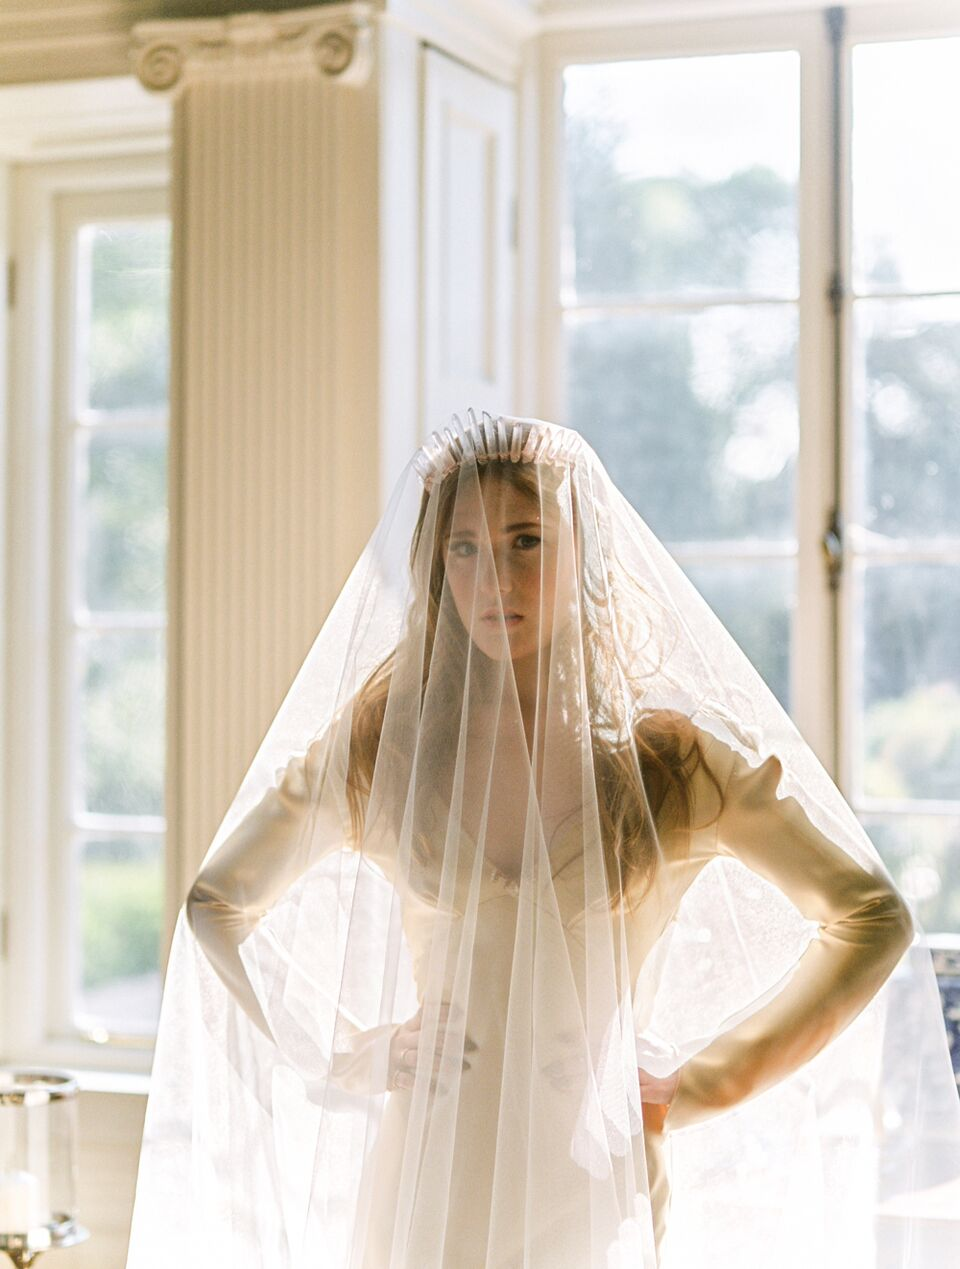 Gloster-House-wedding-inspiration-Ireland-Lisa-O'Dwyer-Photography-166_preview.jpeg